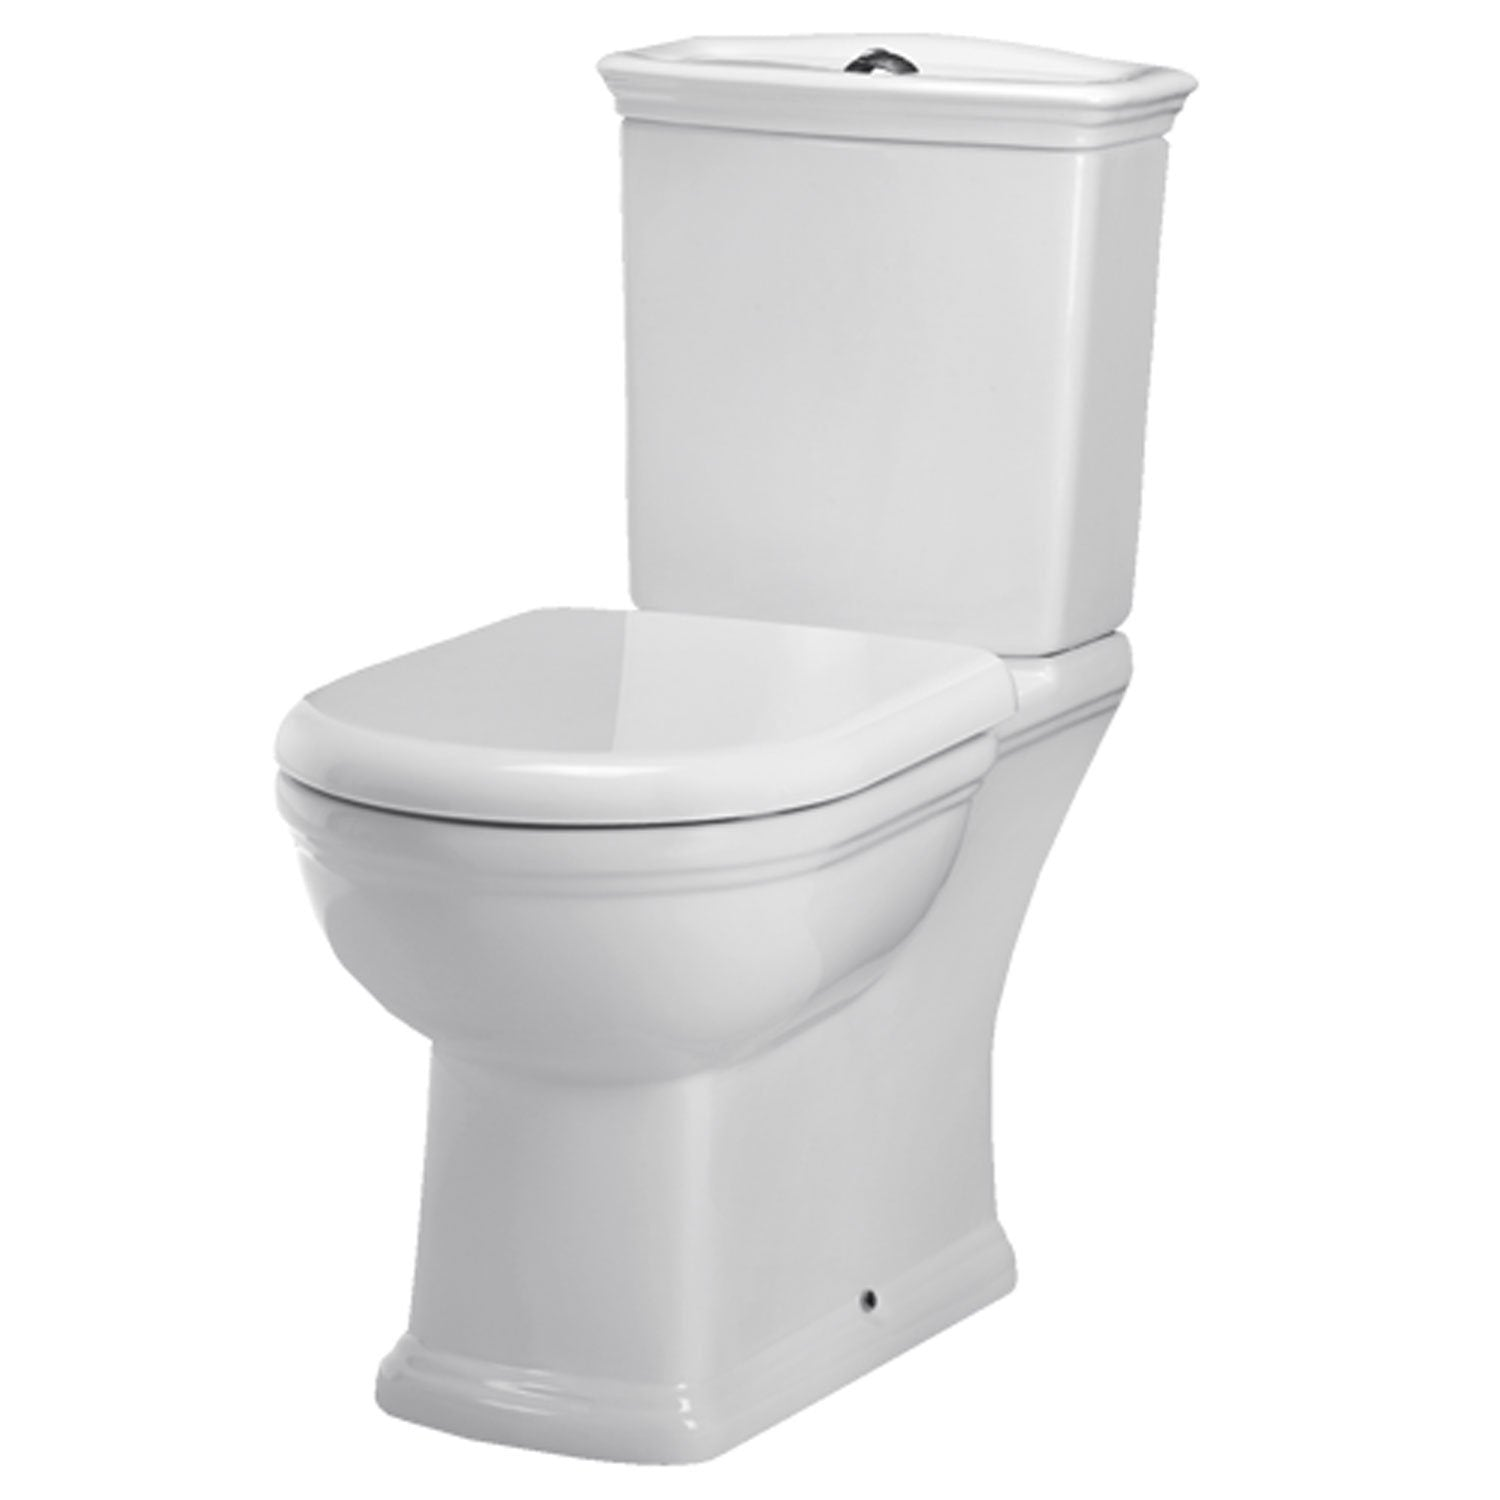 RAK Washington Full Access WC Pack with Soft Close Seat 360mm Wide - White